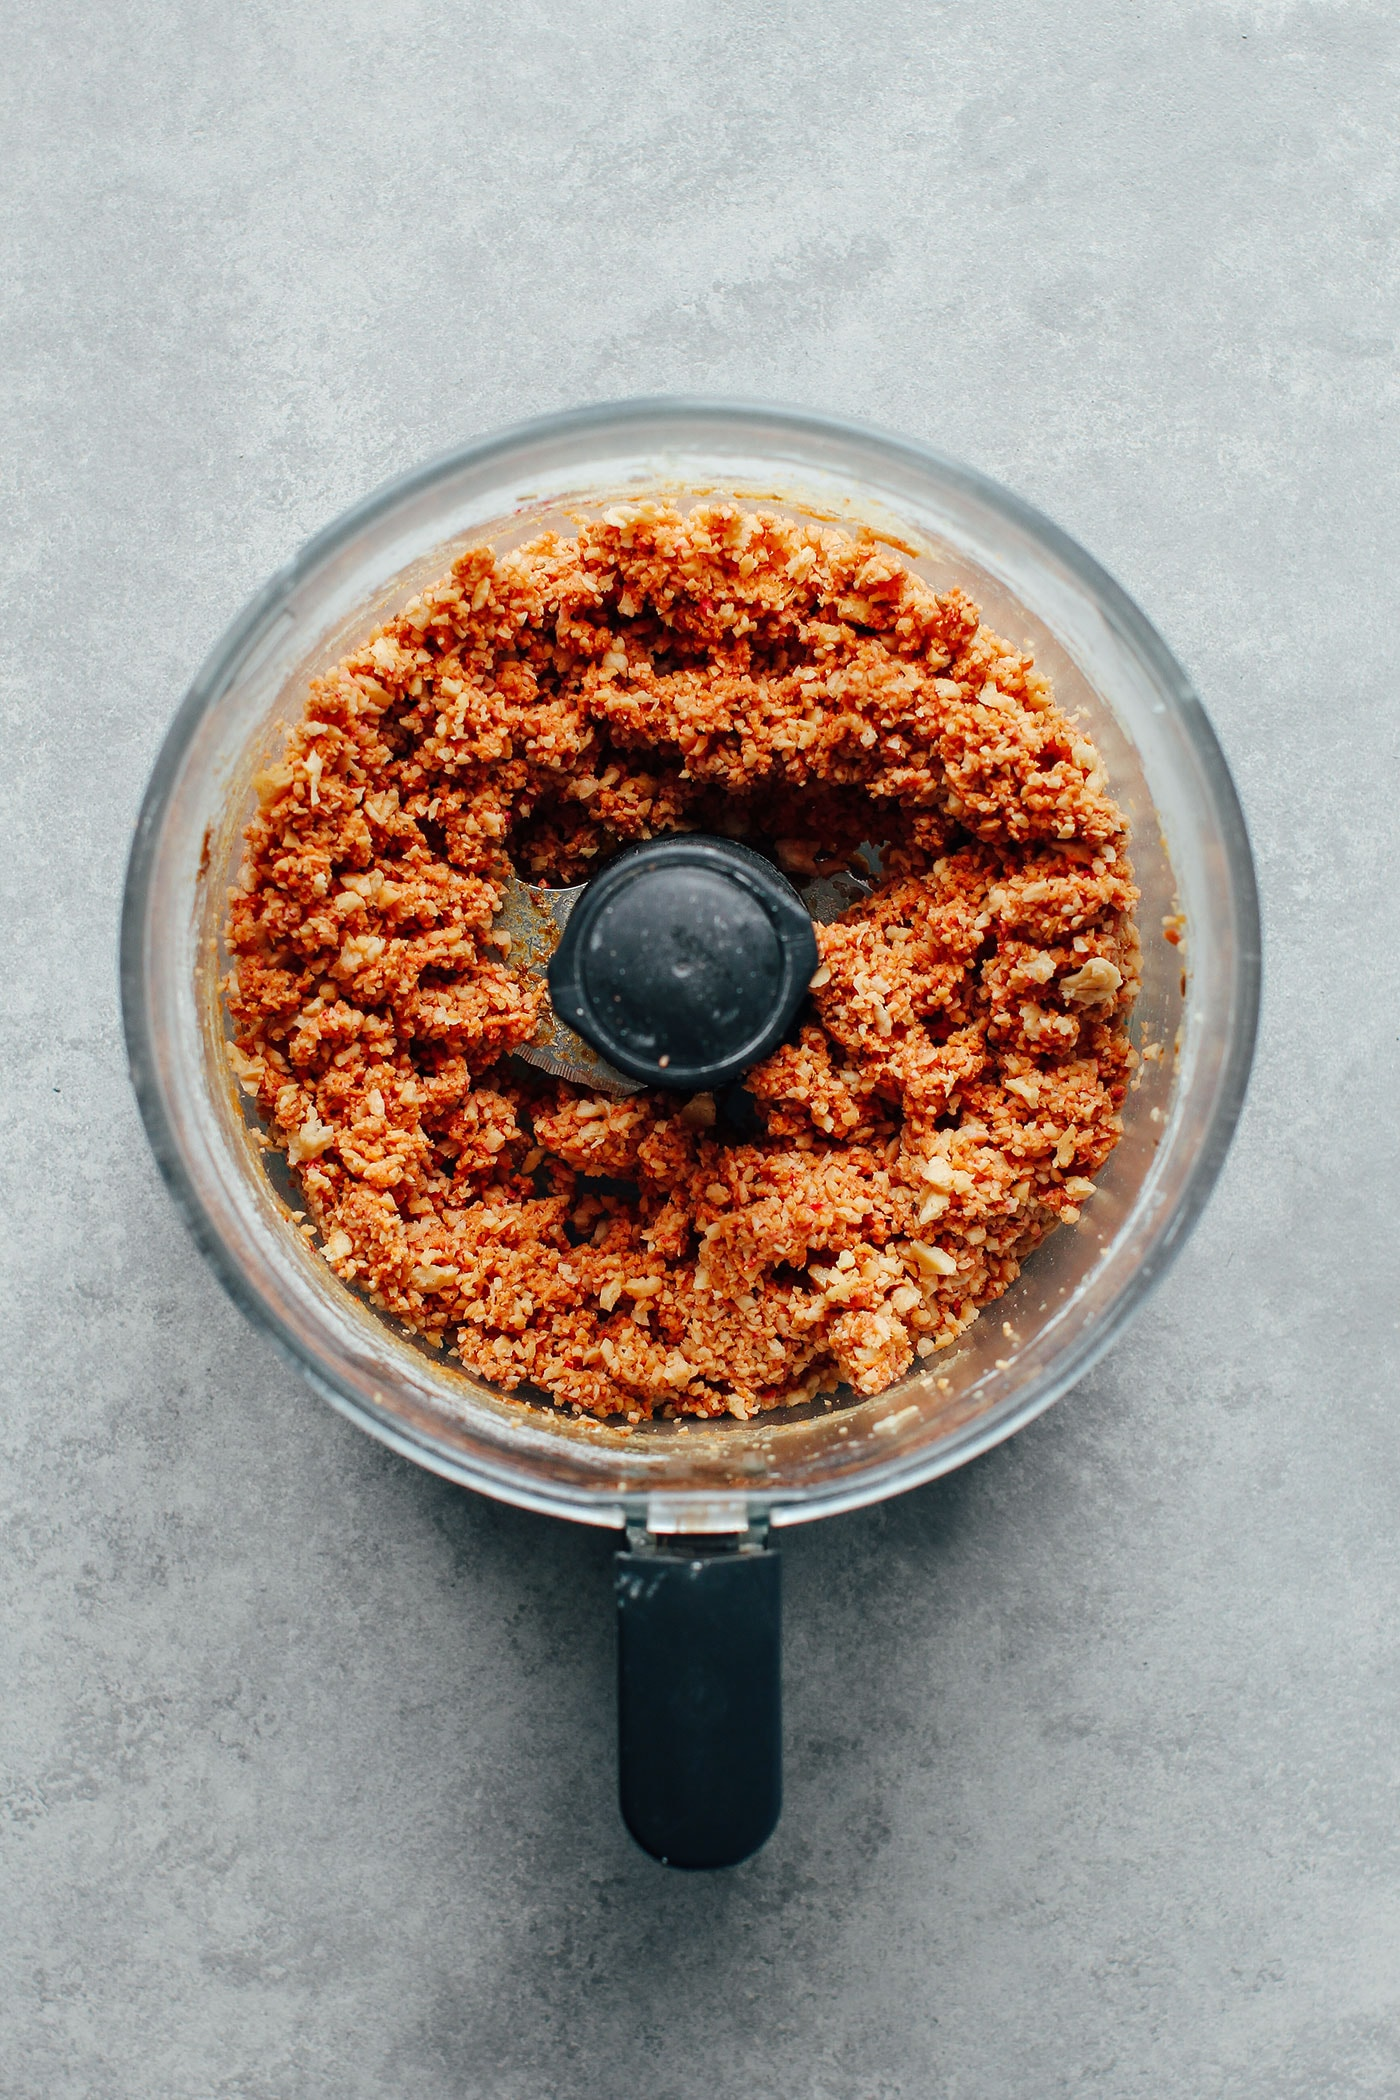 Textured vegetable protein in food processor to make high protein vegan burgers.